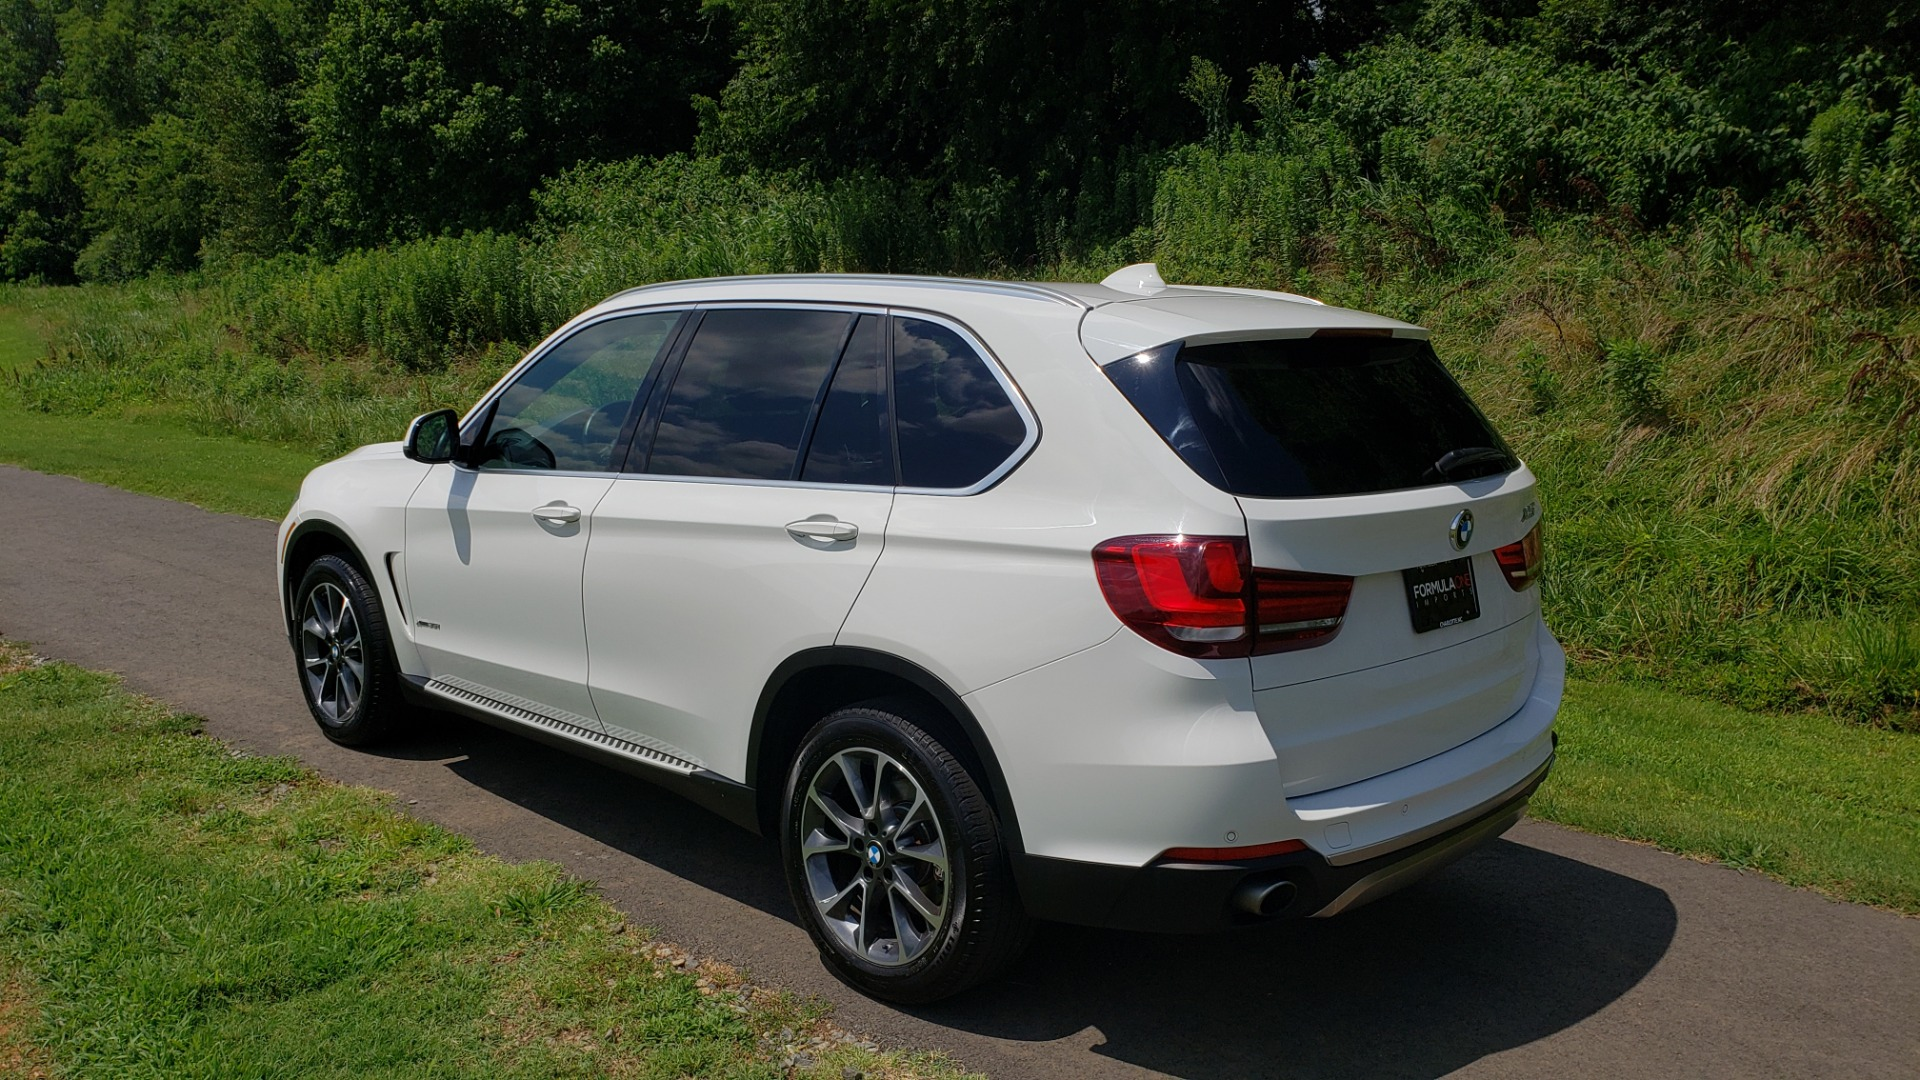 Used 2017 BMW X5 XDRIVE35I / NAV / PANOR-ROOF / HTD STS / REARVIEW for sale Sold at Formula Imports in Charlotte NC 28227 3